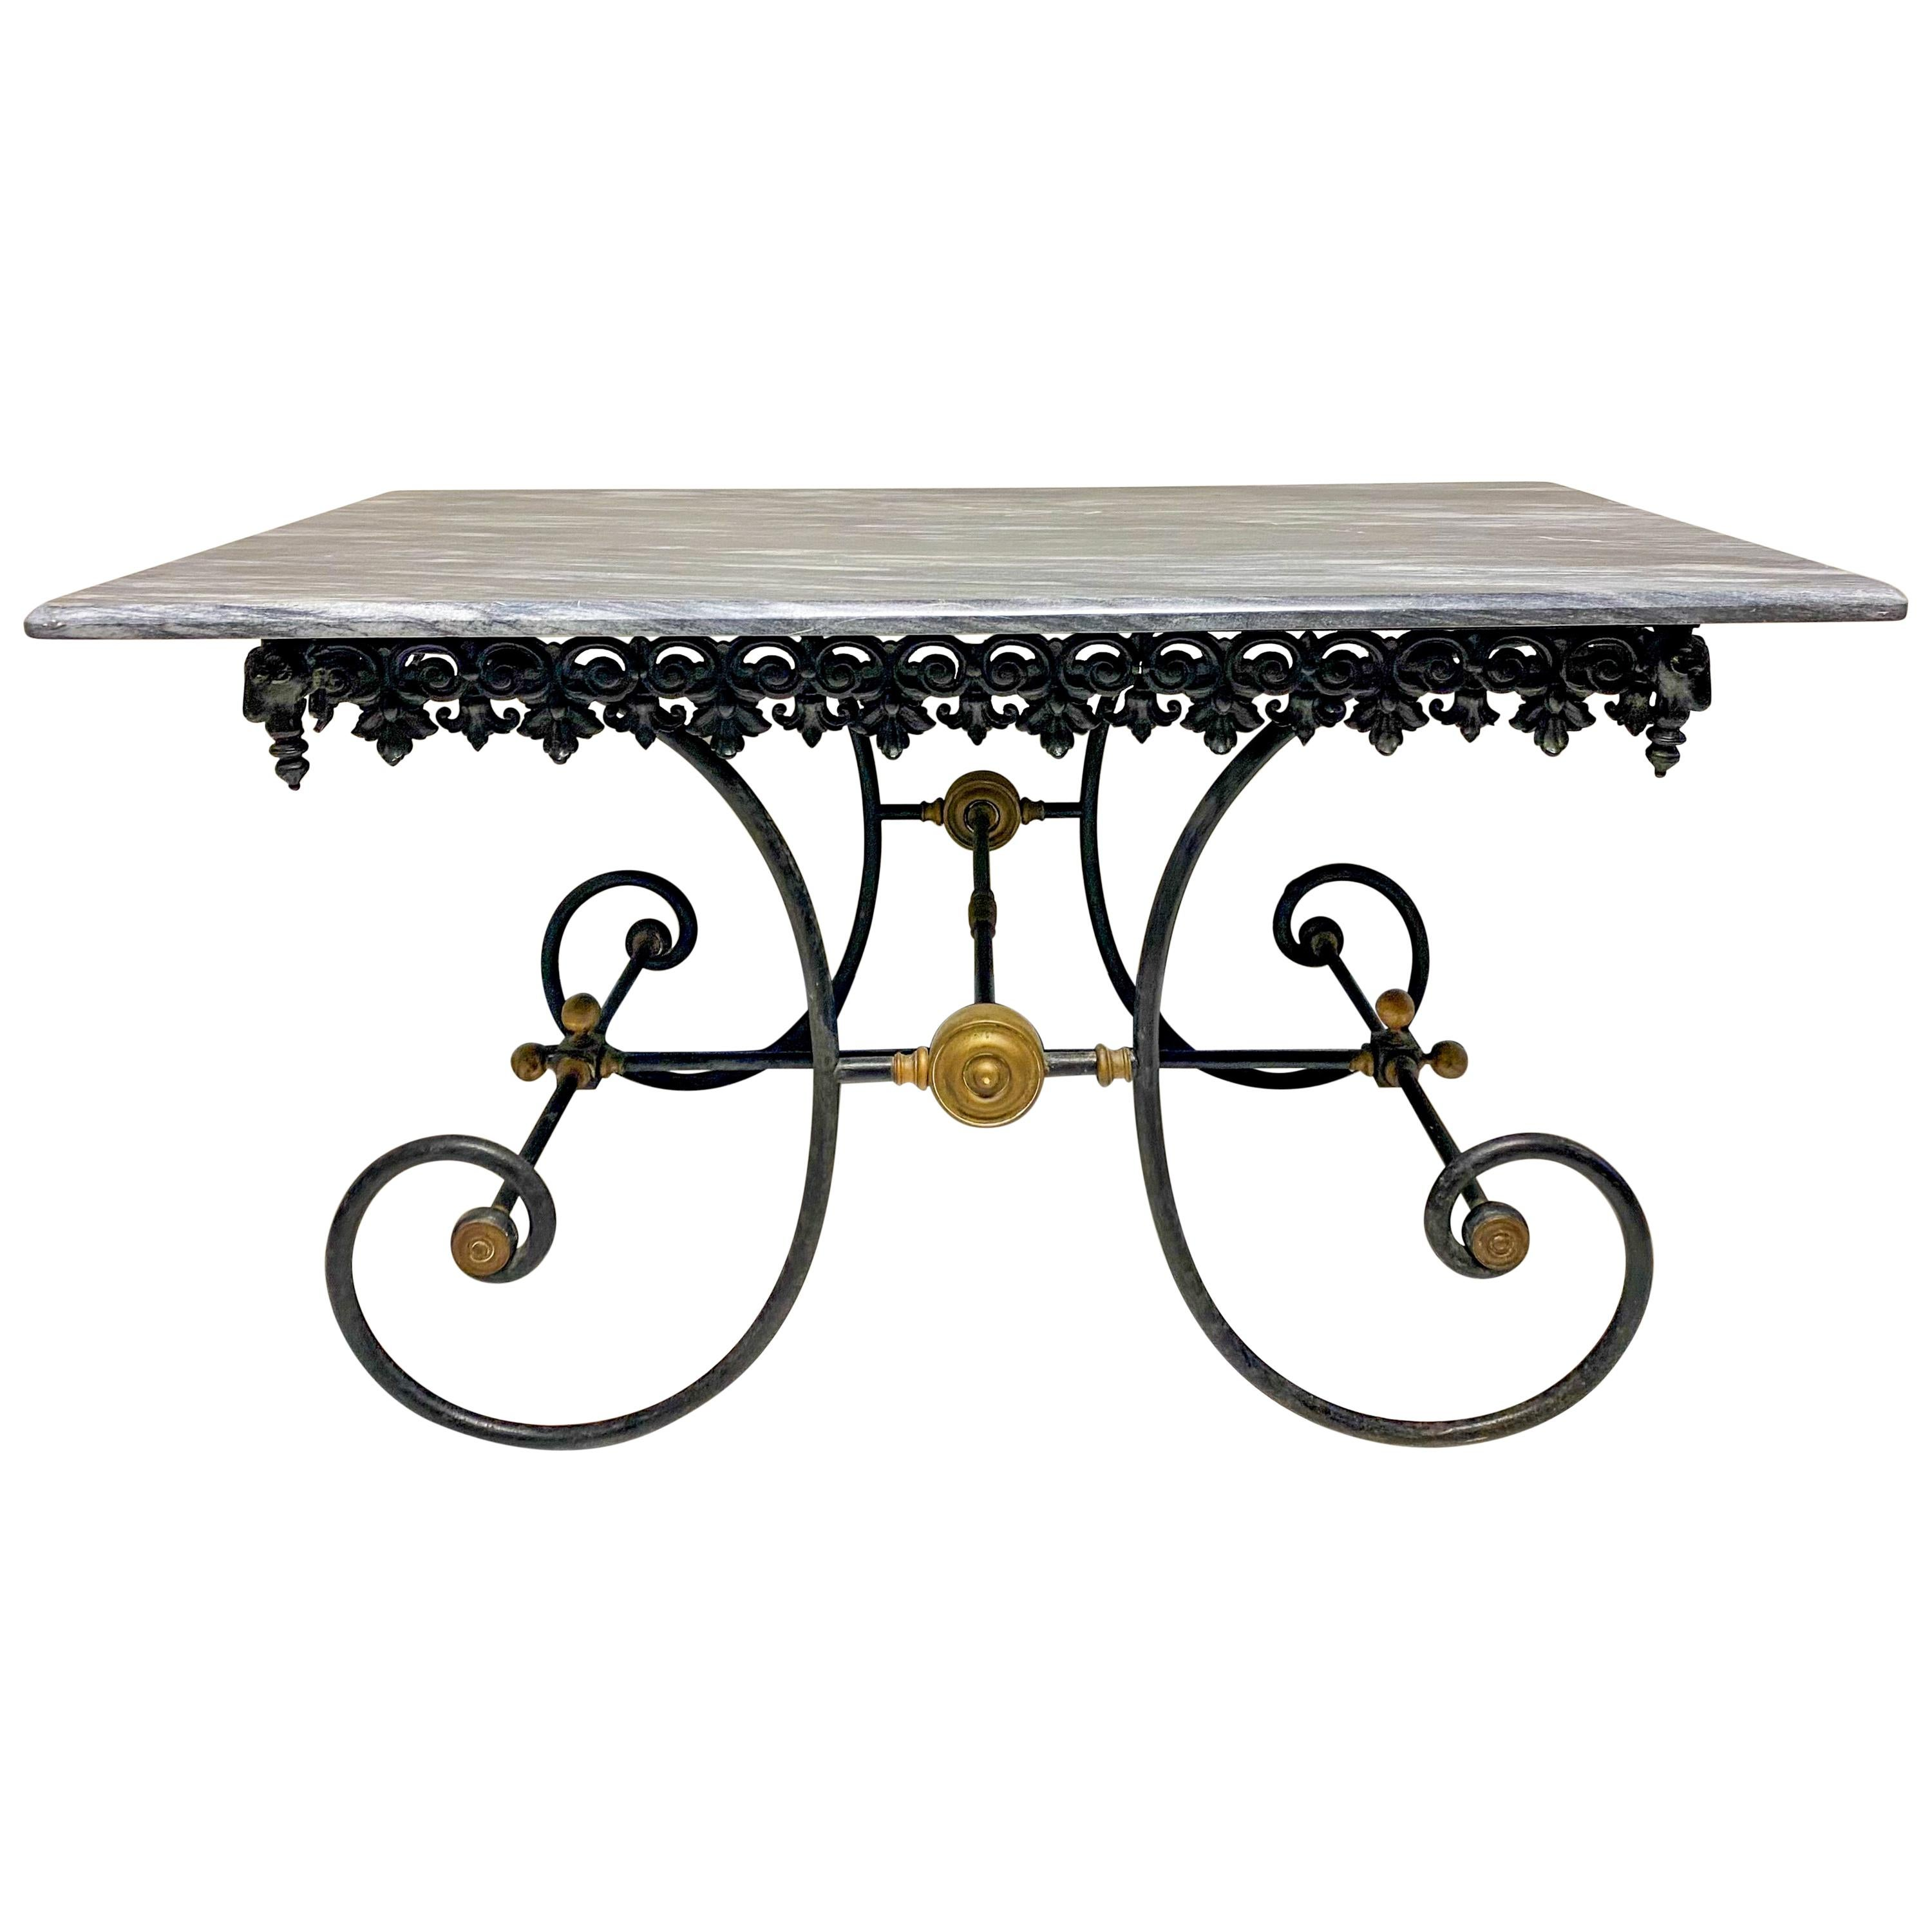 19th Century French Neoclassical Ram's Head Iron & Marble Baker's Table